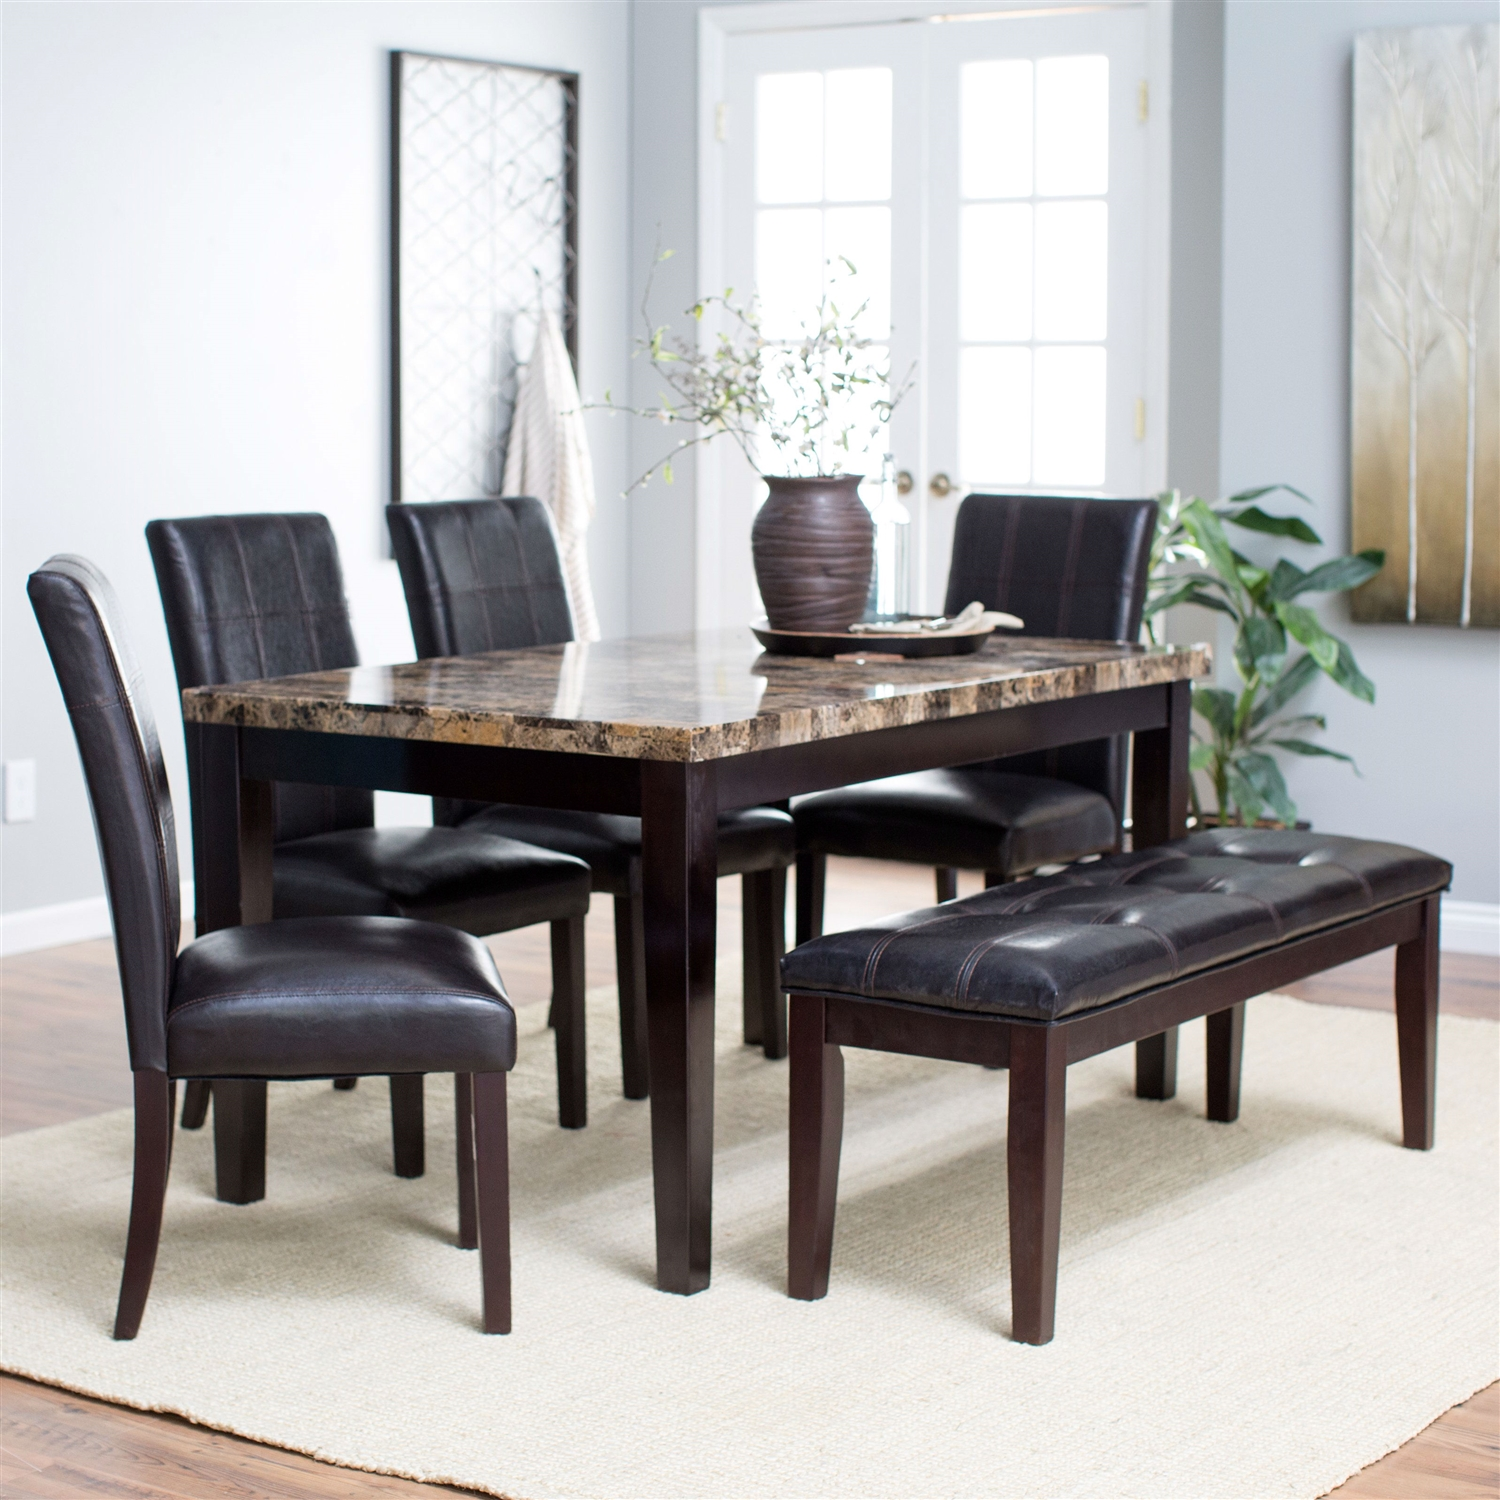 Traditional 6 Piece Dining Set With Faux Marble Top Table 4 Chairs And Bench